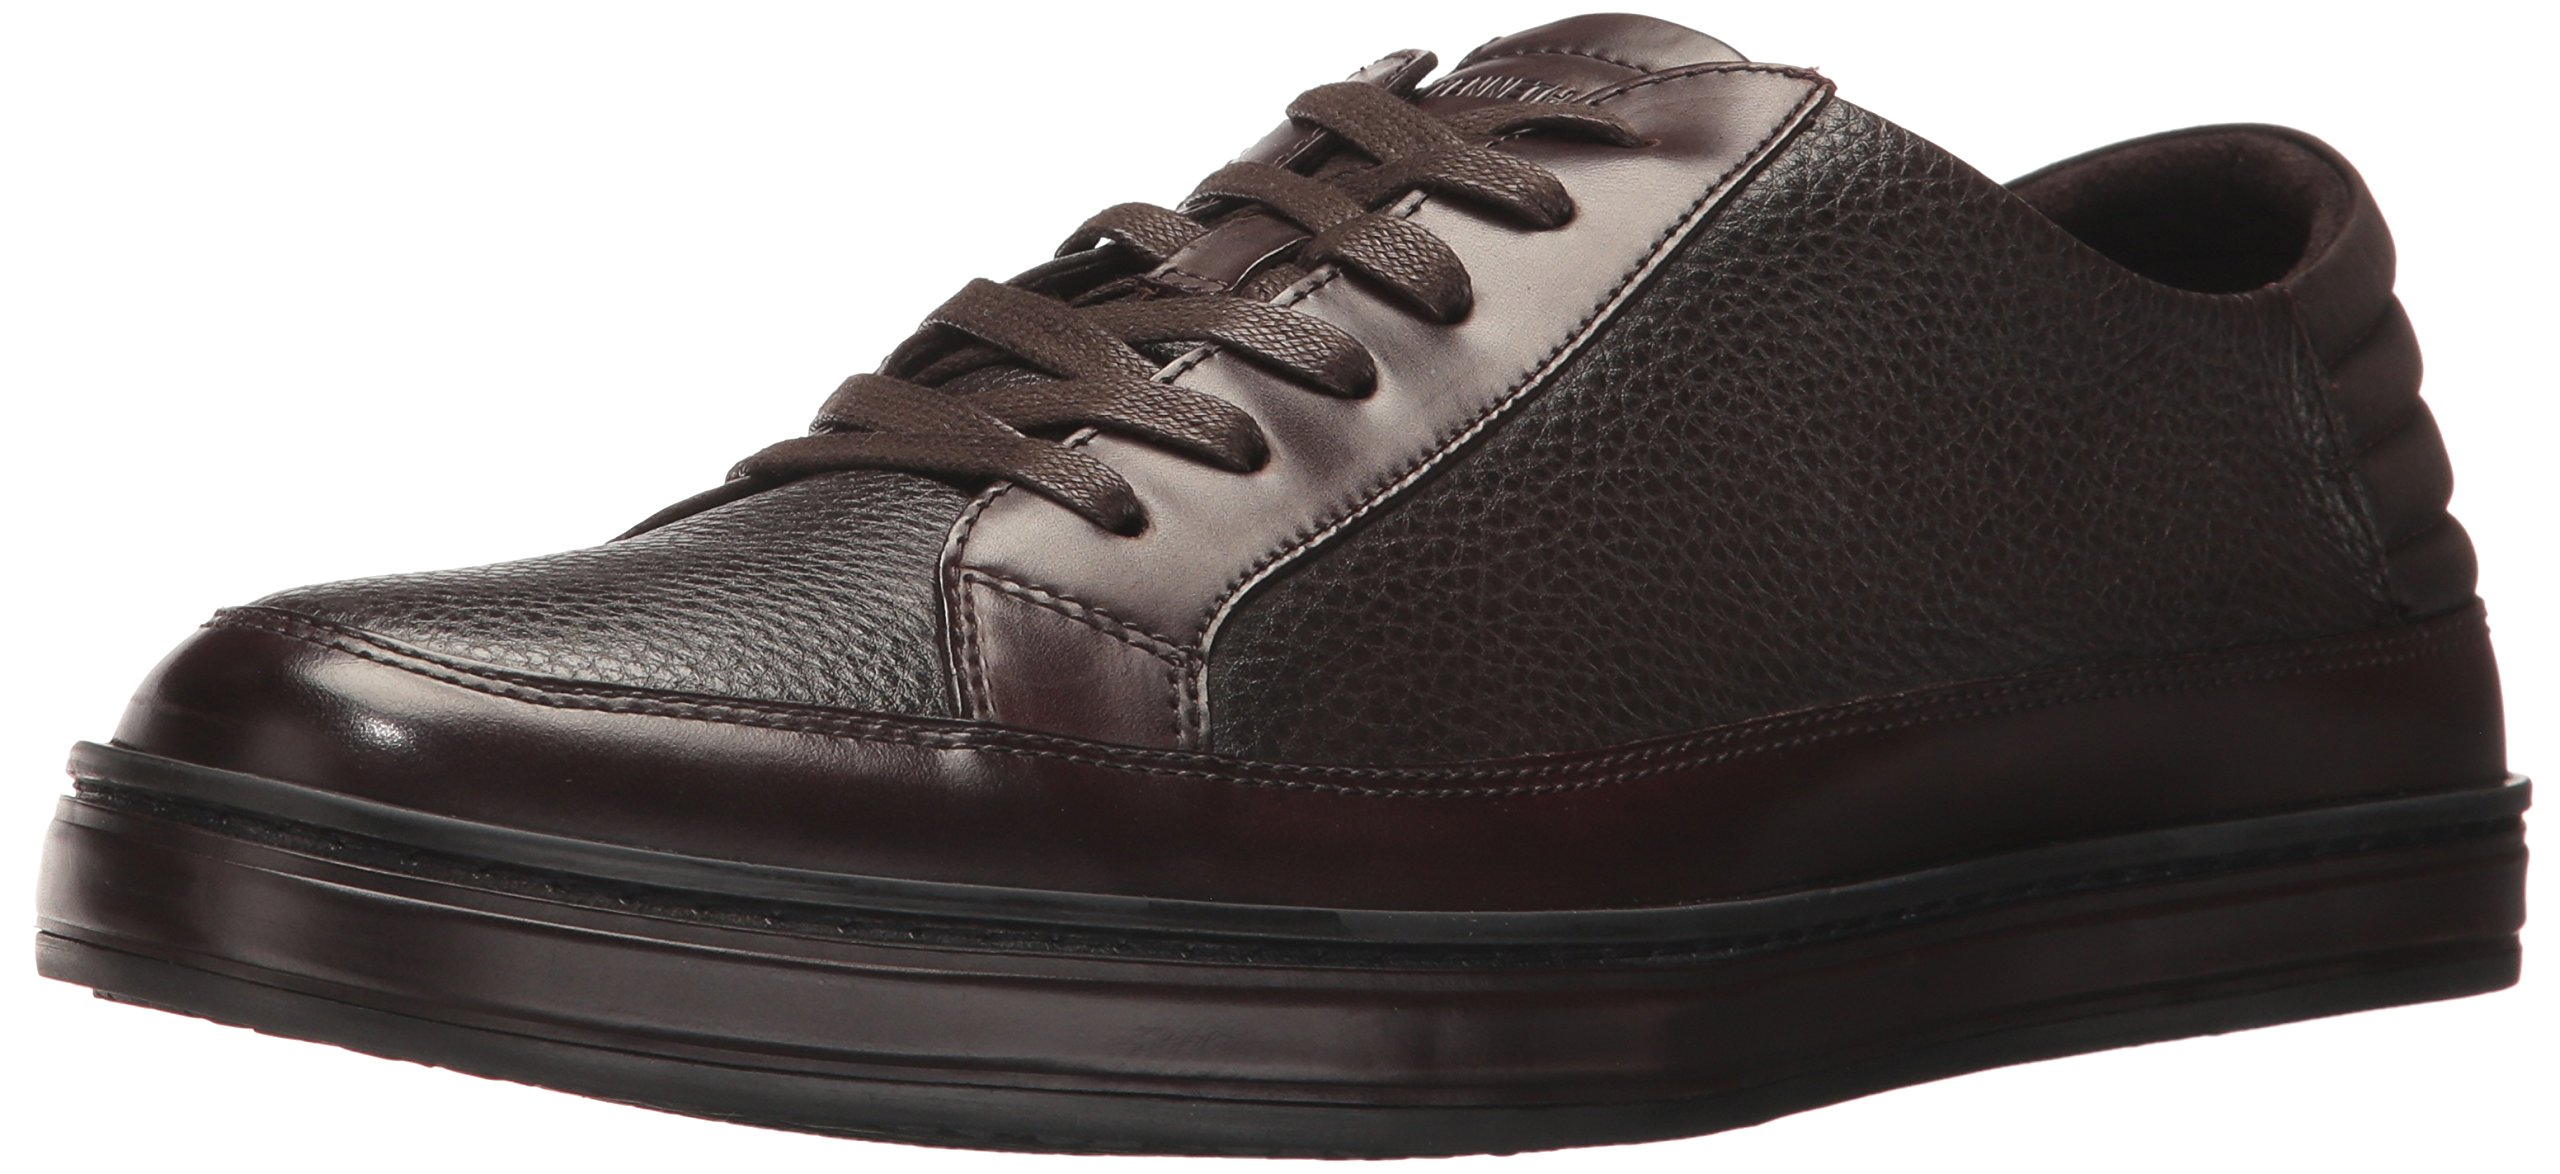 Kenneth Cole New York Men's Brand Stand Sneaker, Brown, 10.5 M US